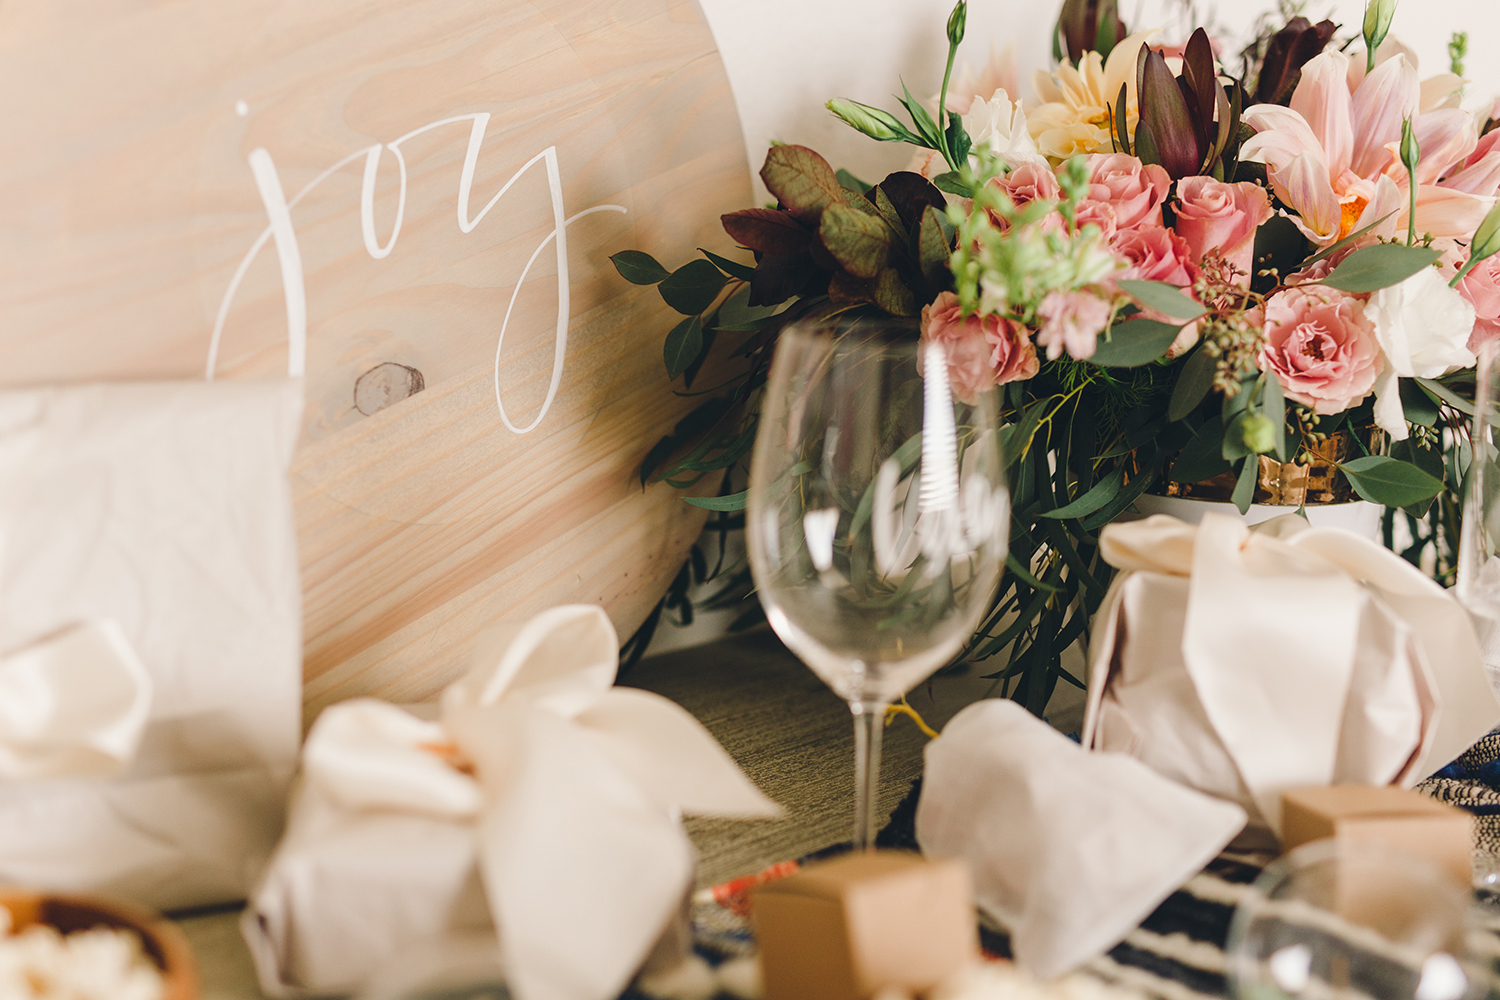 Simple wood signs in place of traditional holiday color themes and decor | A Fabulous Fete